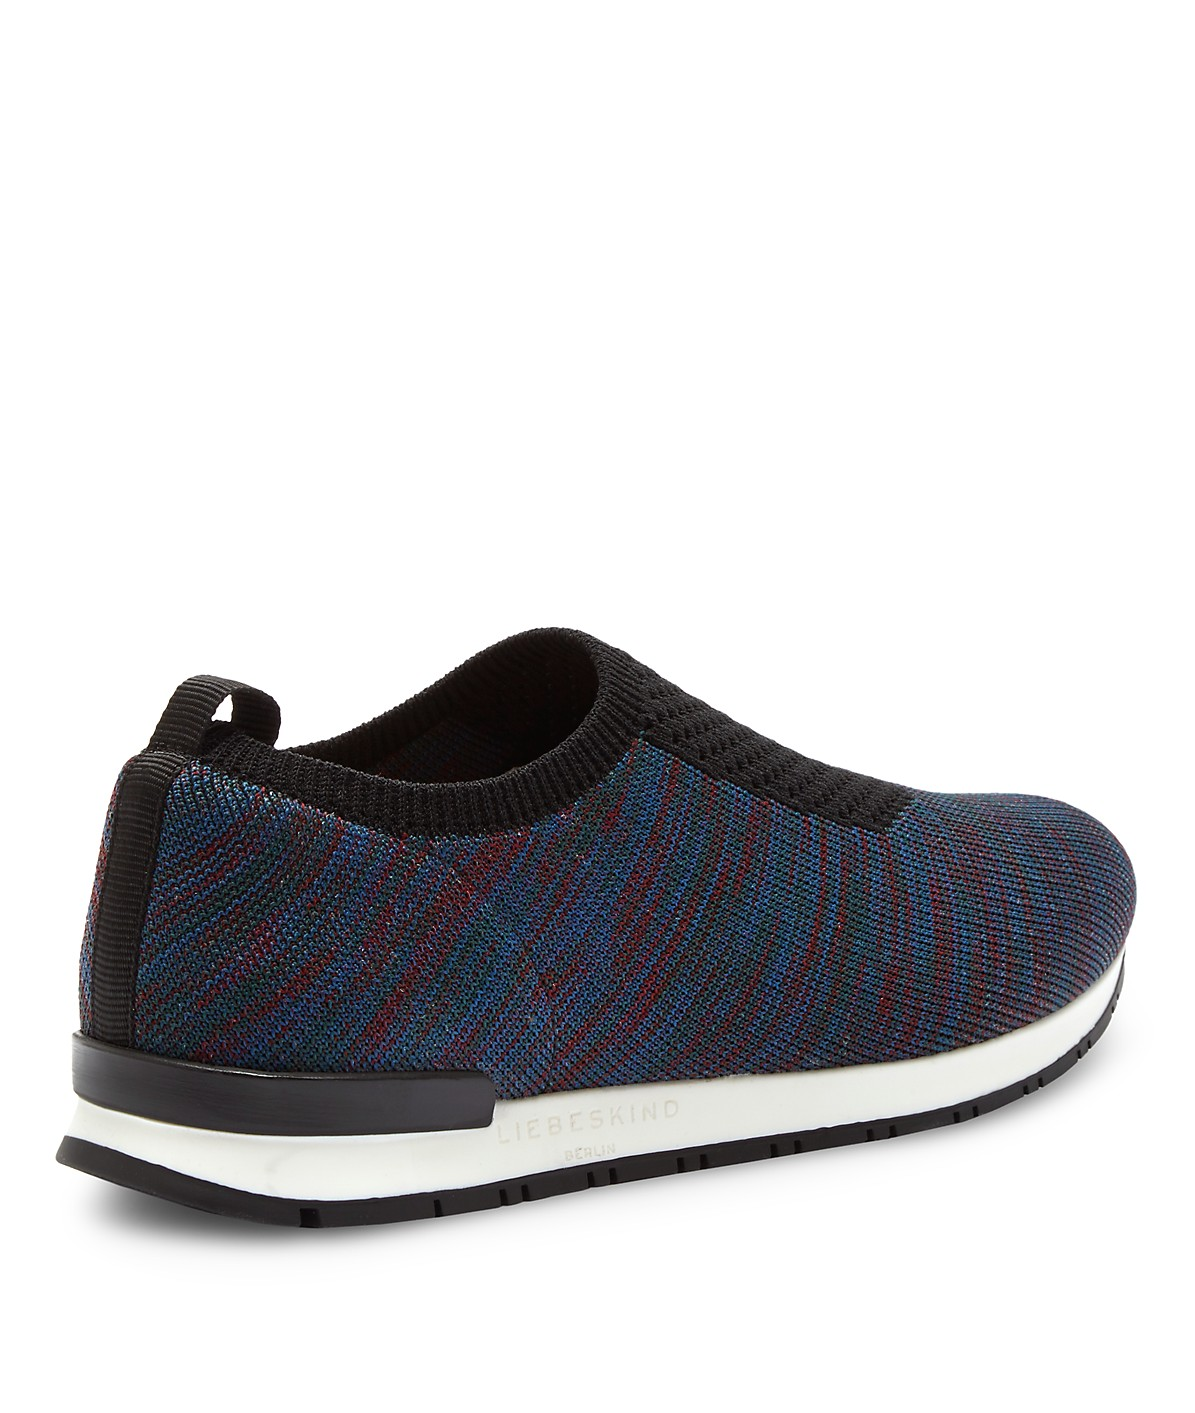 knit sneaker  from liebeskind